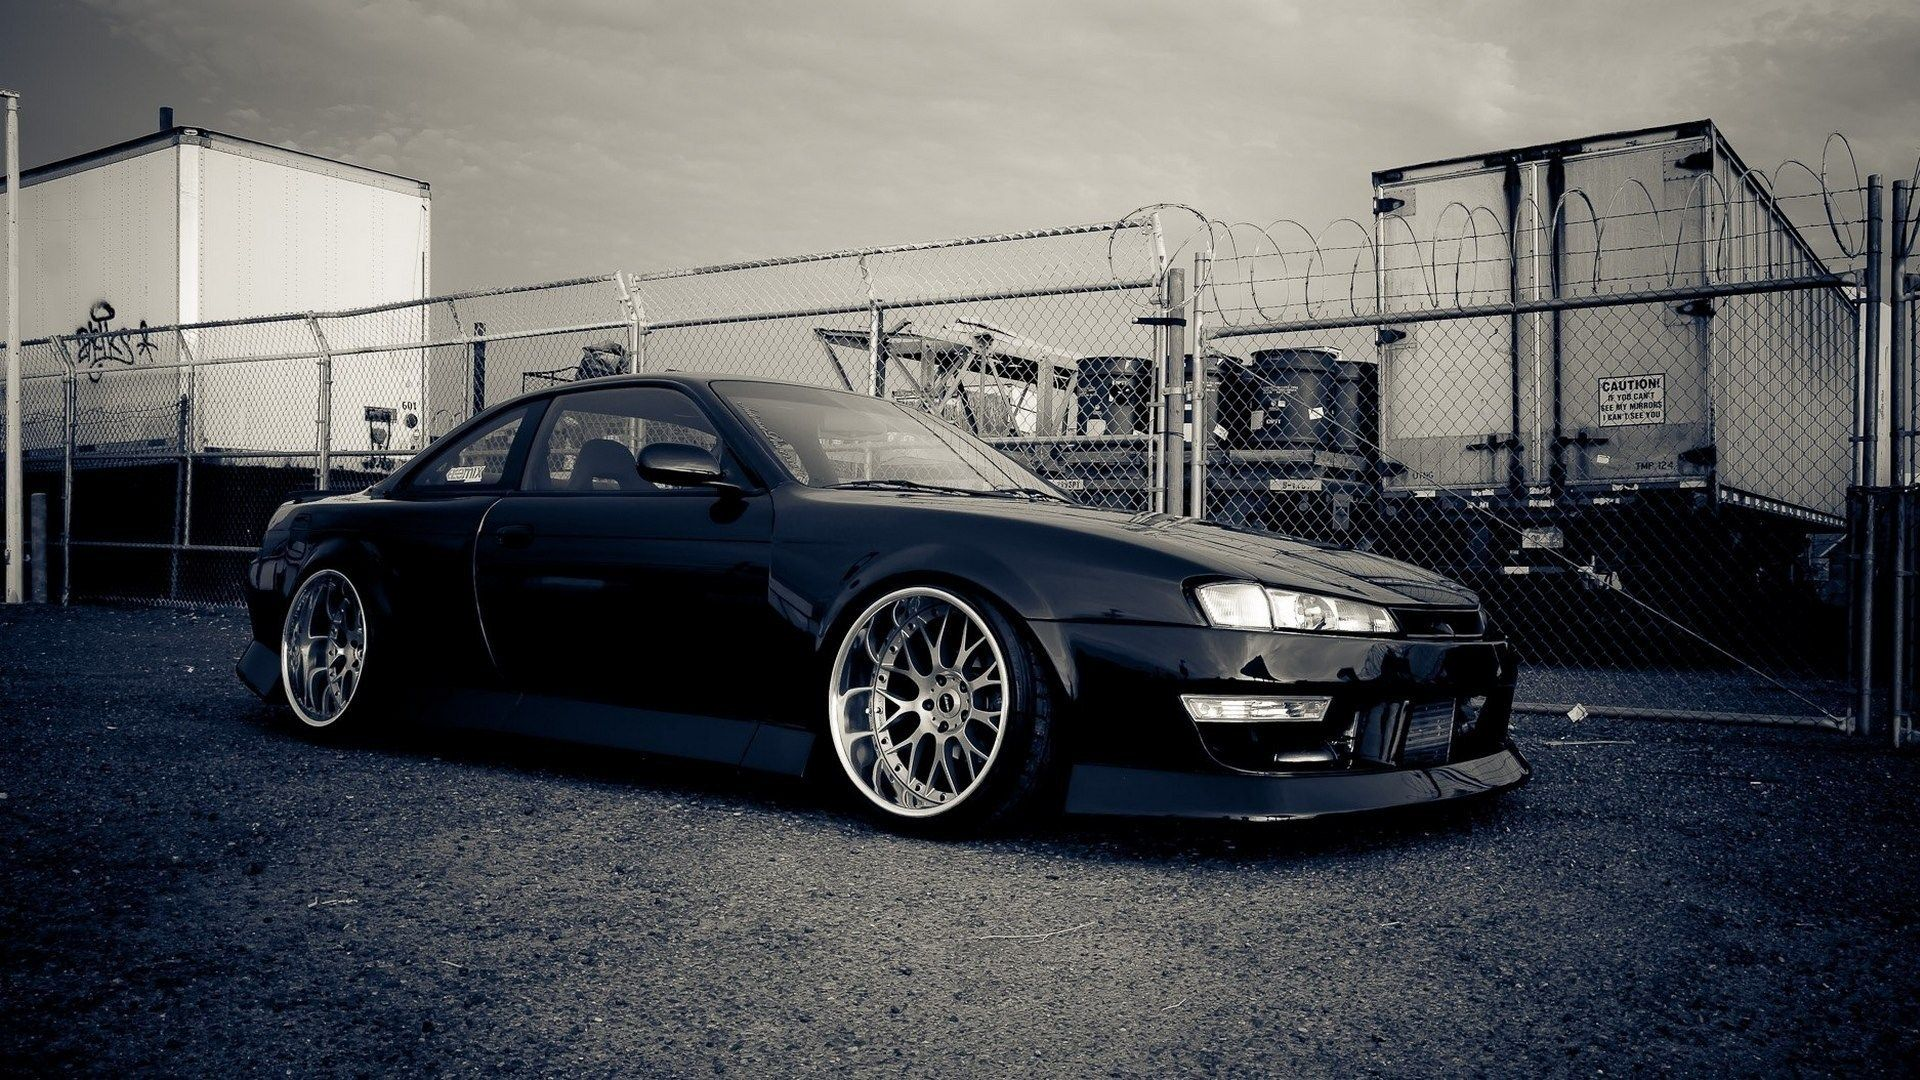 Charmant In The Land Where Demo Cars Are Destined For Oblivion The 326 Power Nissan  S14 Silvia